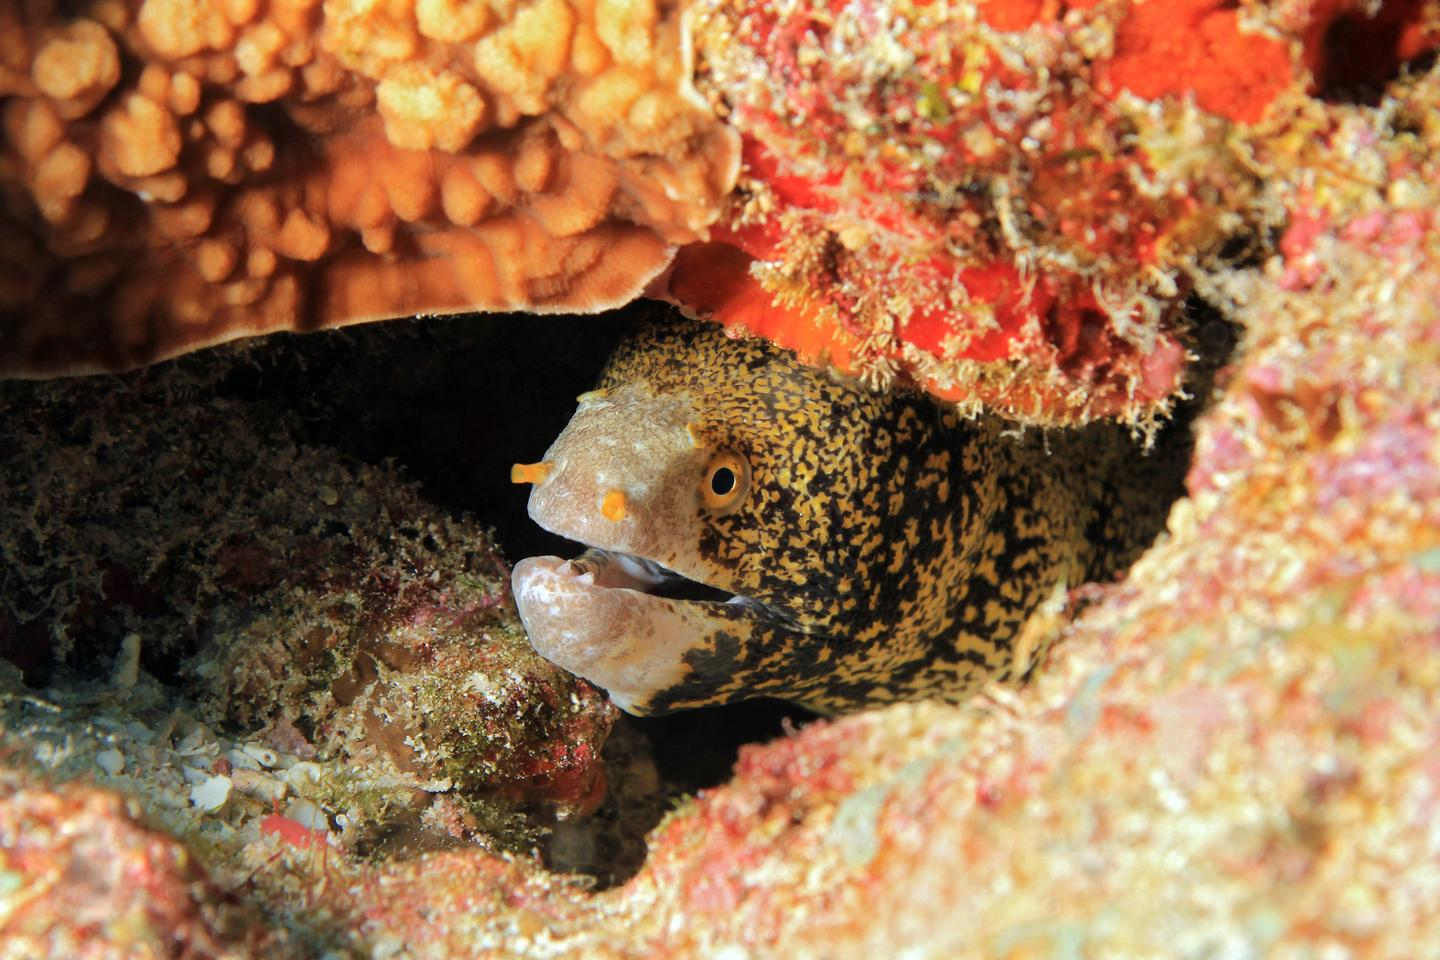 The snowflake moray eel (Echidna nebulosa) is found throughout the Indo-Pacific region